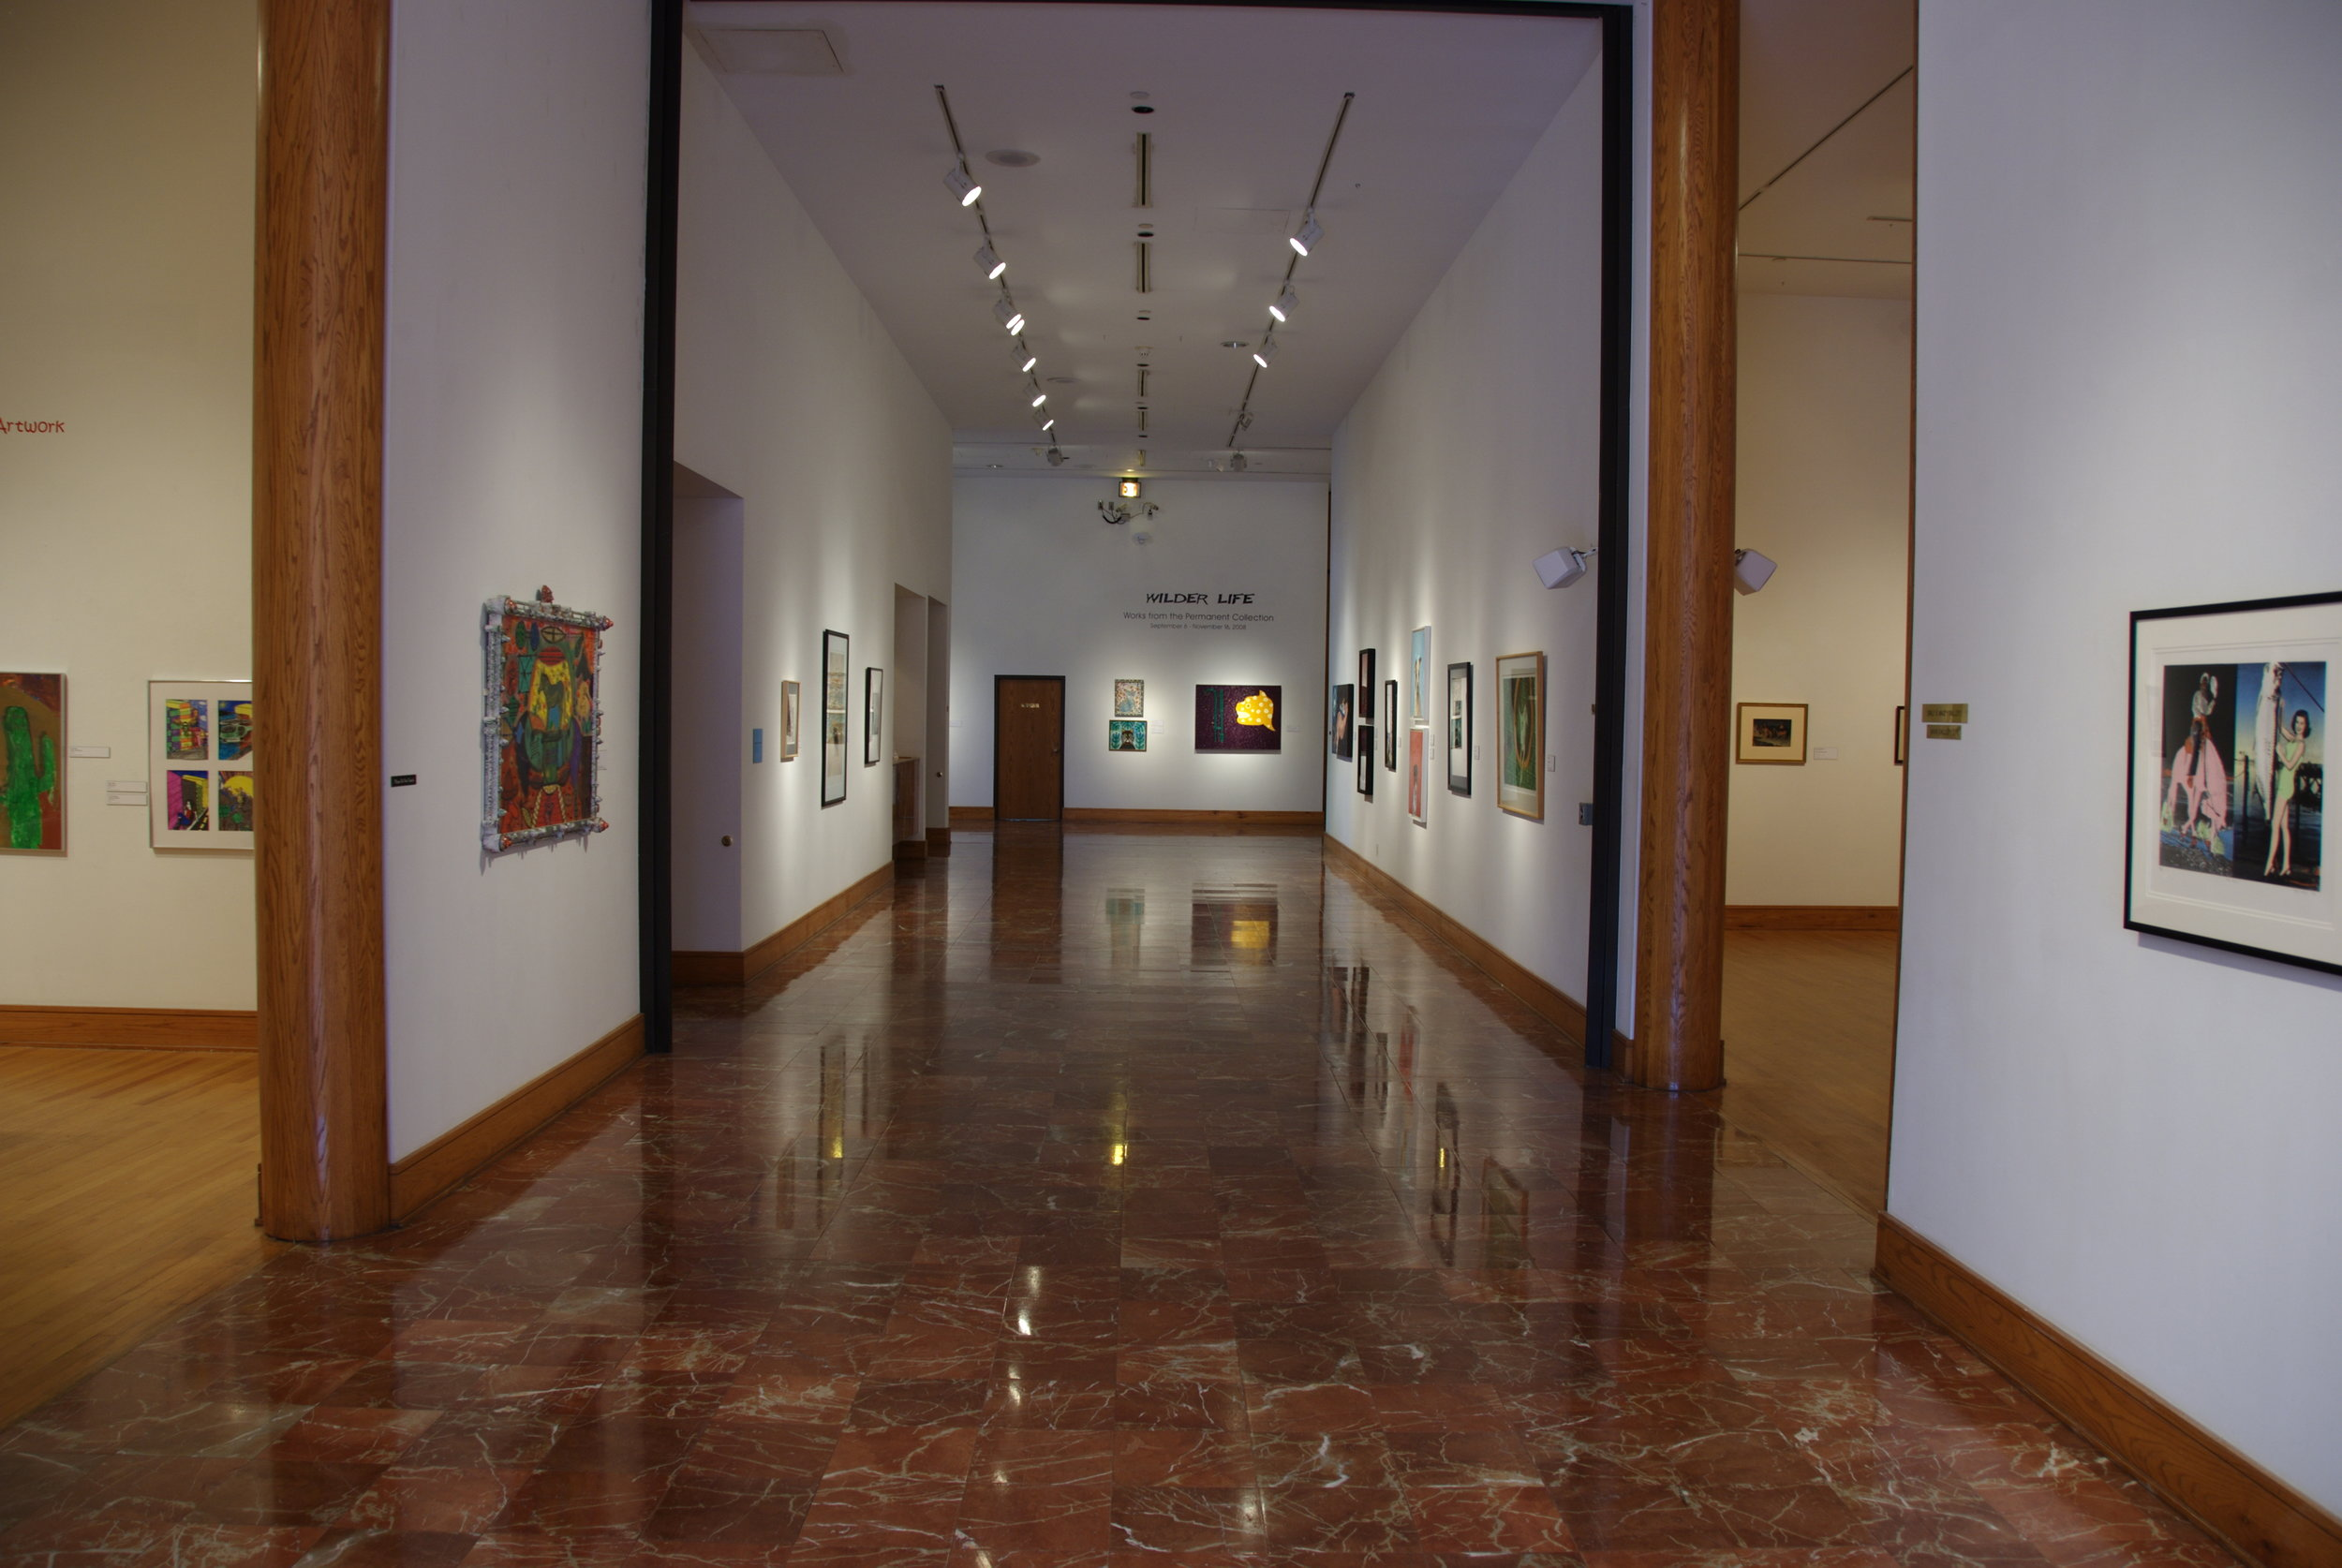 Wilder Life: Works From the Permanent Collection, 2008.